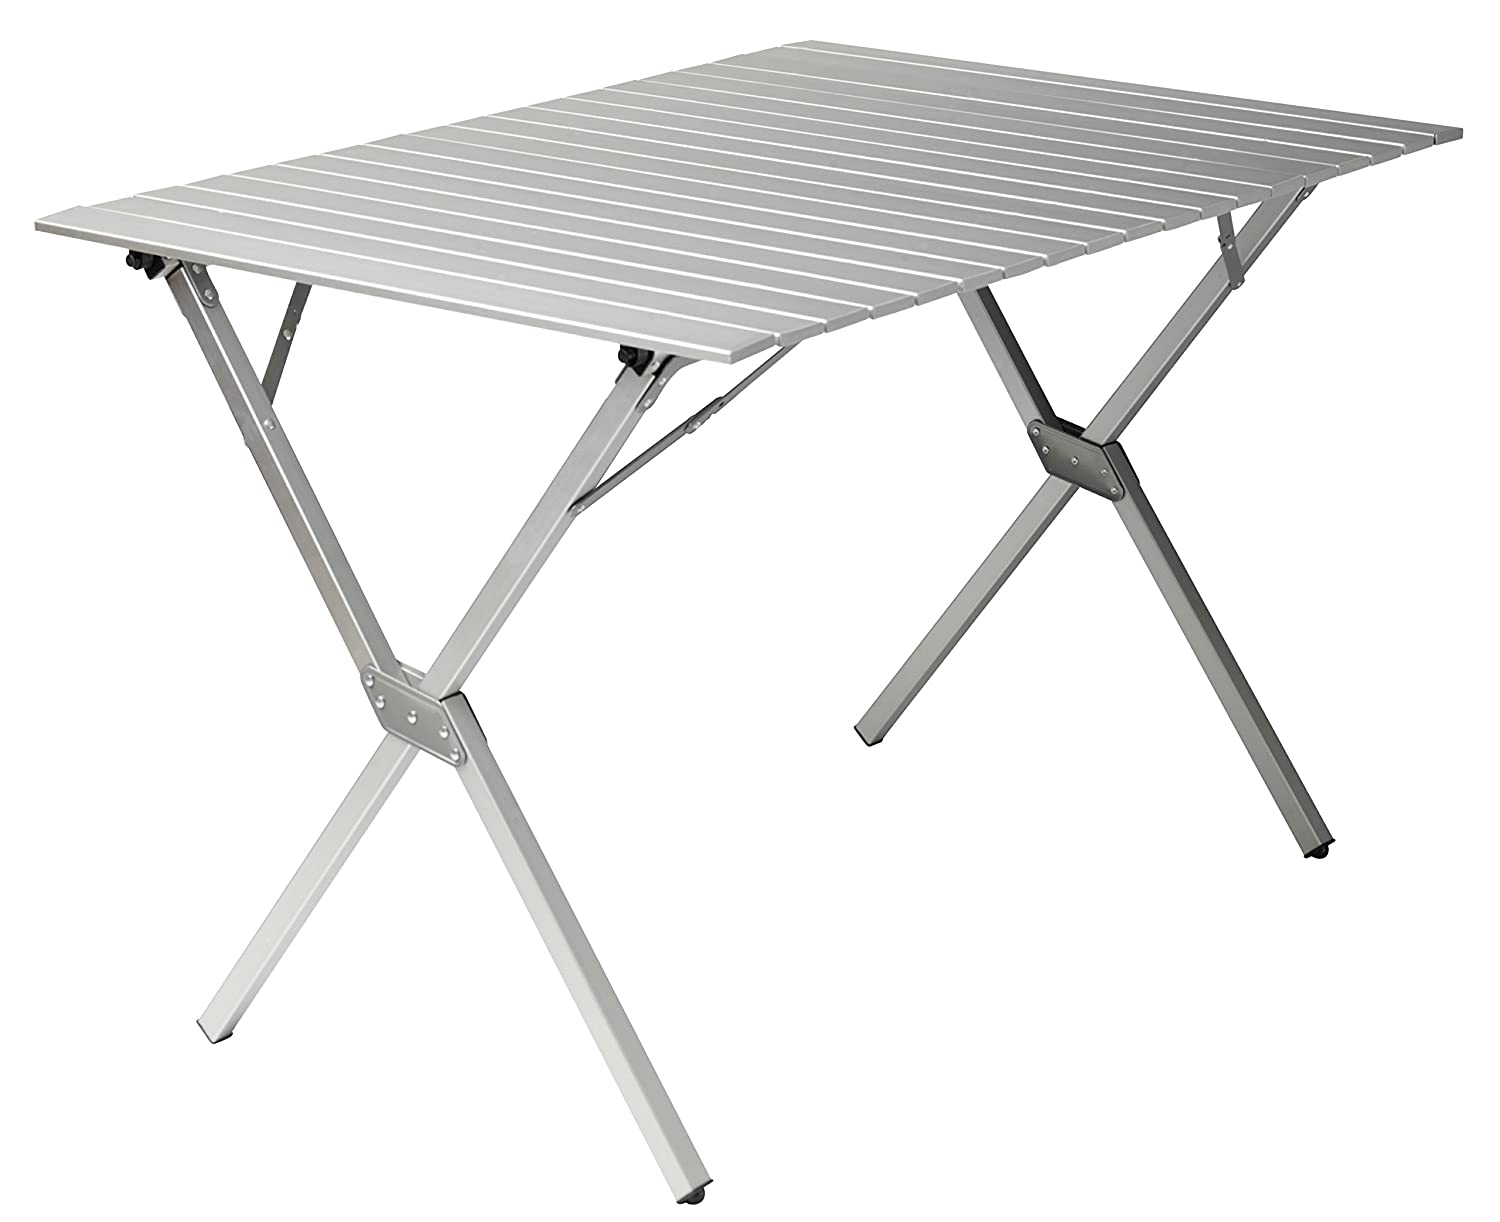 Gran Canyon Mesa familiar, mesa para camping plegable, aluminio, 112 x 80 x 72 cm, plata, 308021 Grand Canyon